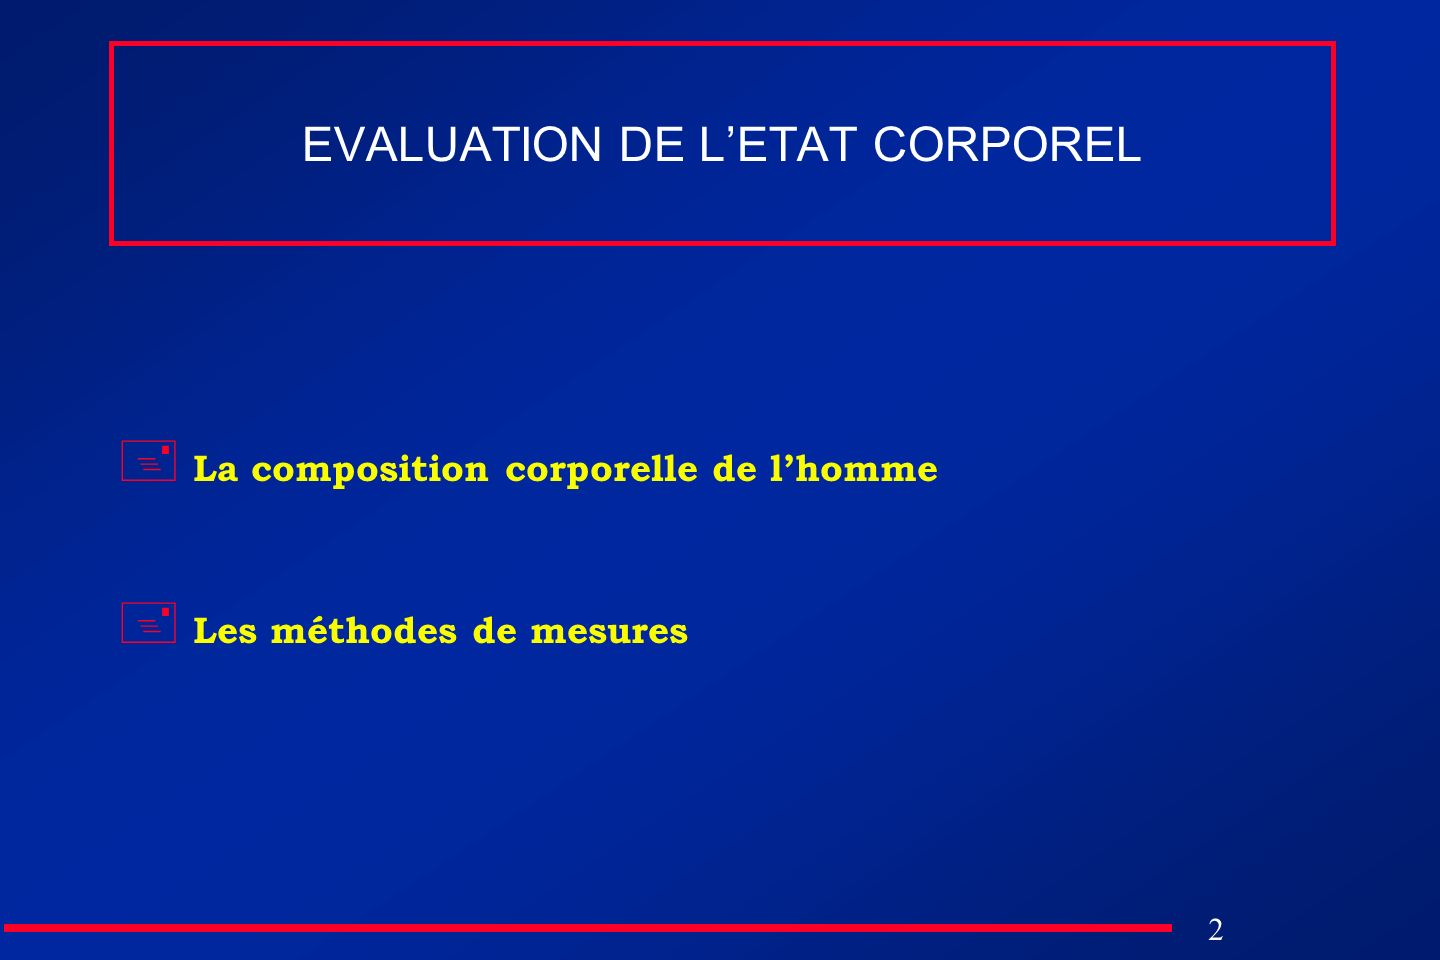 EVALUATION DE L'ETAT CORPOREL